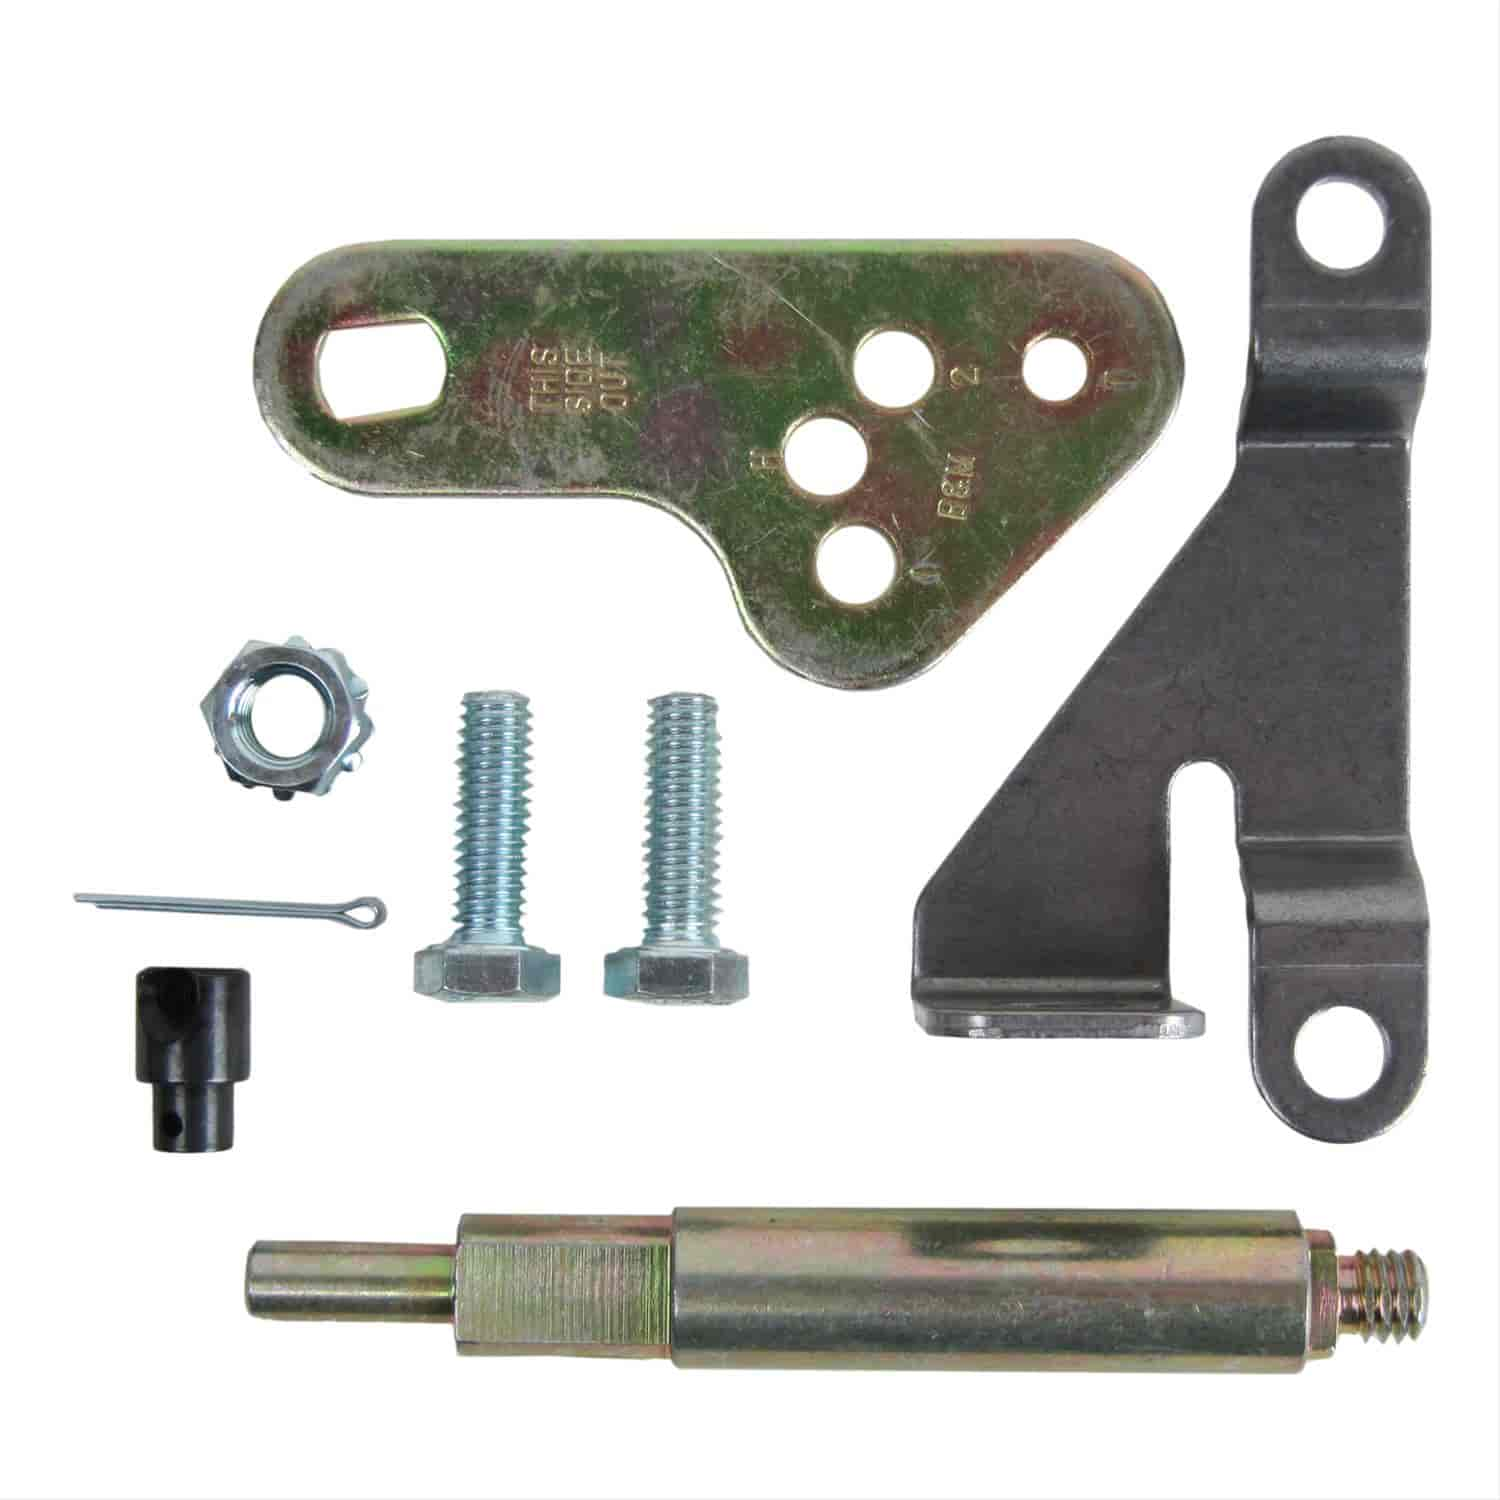 B&M 70497 - B&M Automatic Shifter Brackets and Levers